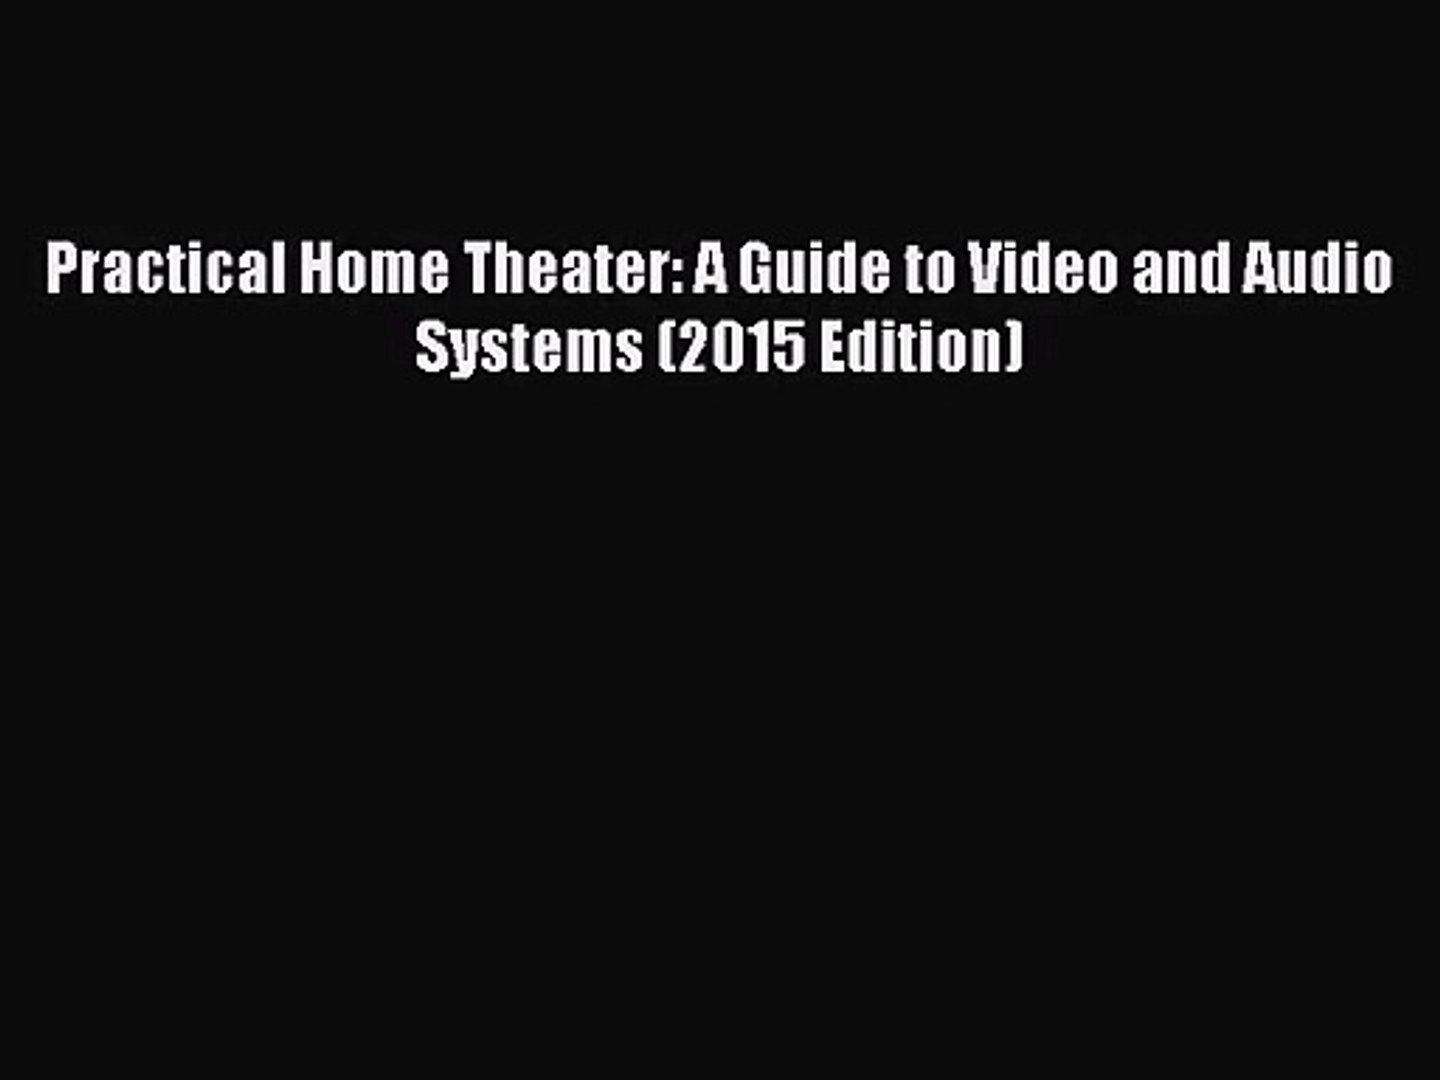 A Guide to Video and Audio Systems Practical Home Theater